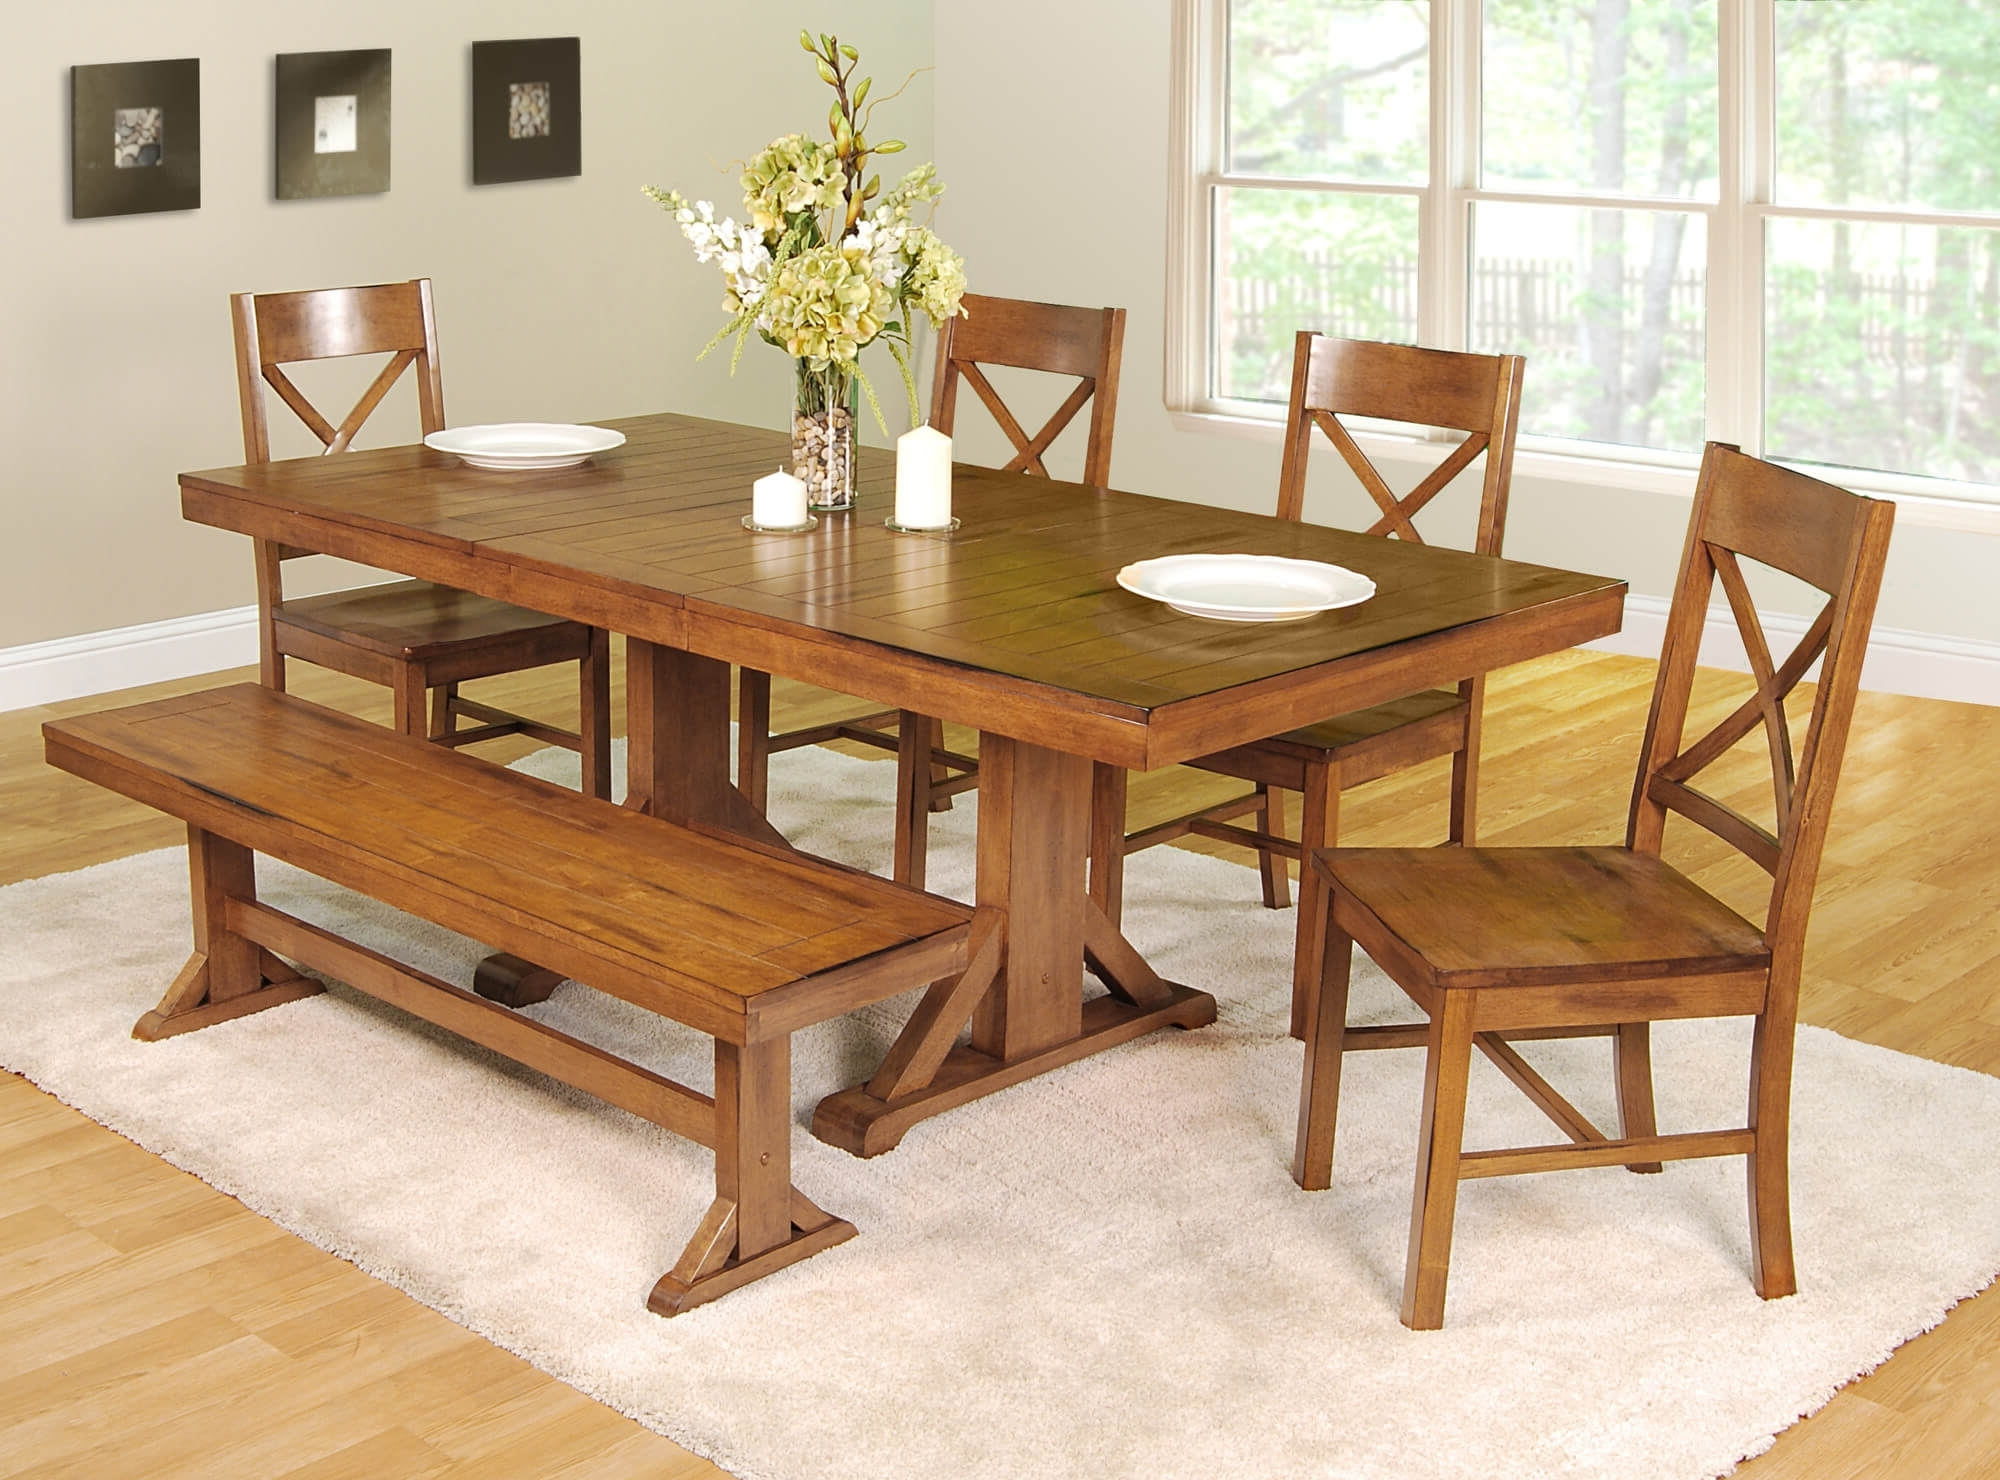 26 Dining Room Sets (Big And Small) With Bench Seating (2018) In Well Liked Dining Tables Seats 8 (Gallery 22 of 25)